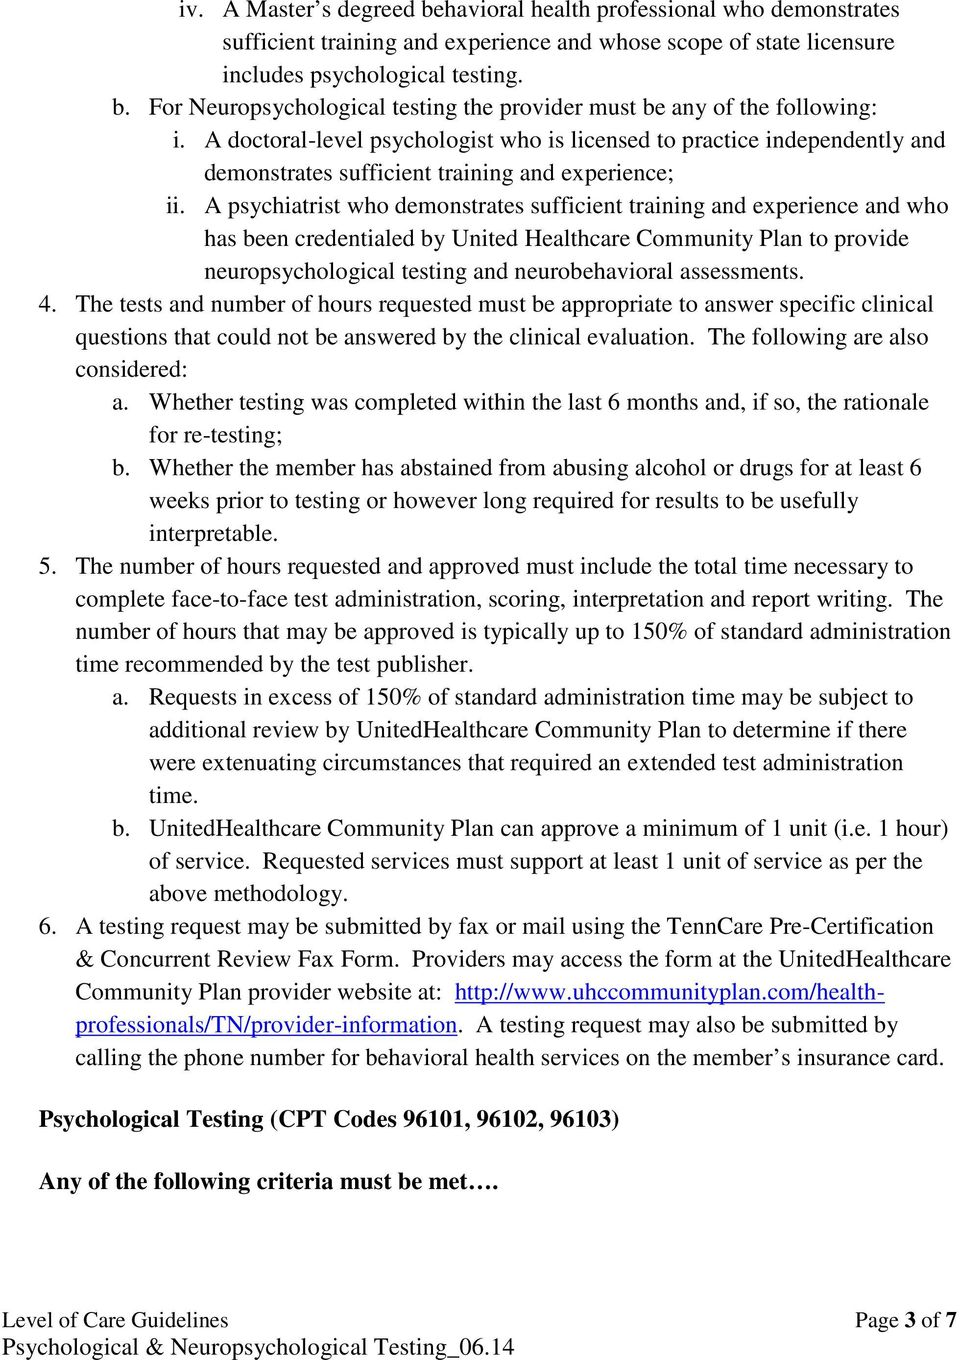 A psychiatrist who demonstrates sufficient training and experience and who has been credentialed by United Healthcare Community Plan to provide neuropsychological testing and neurobehavioral